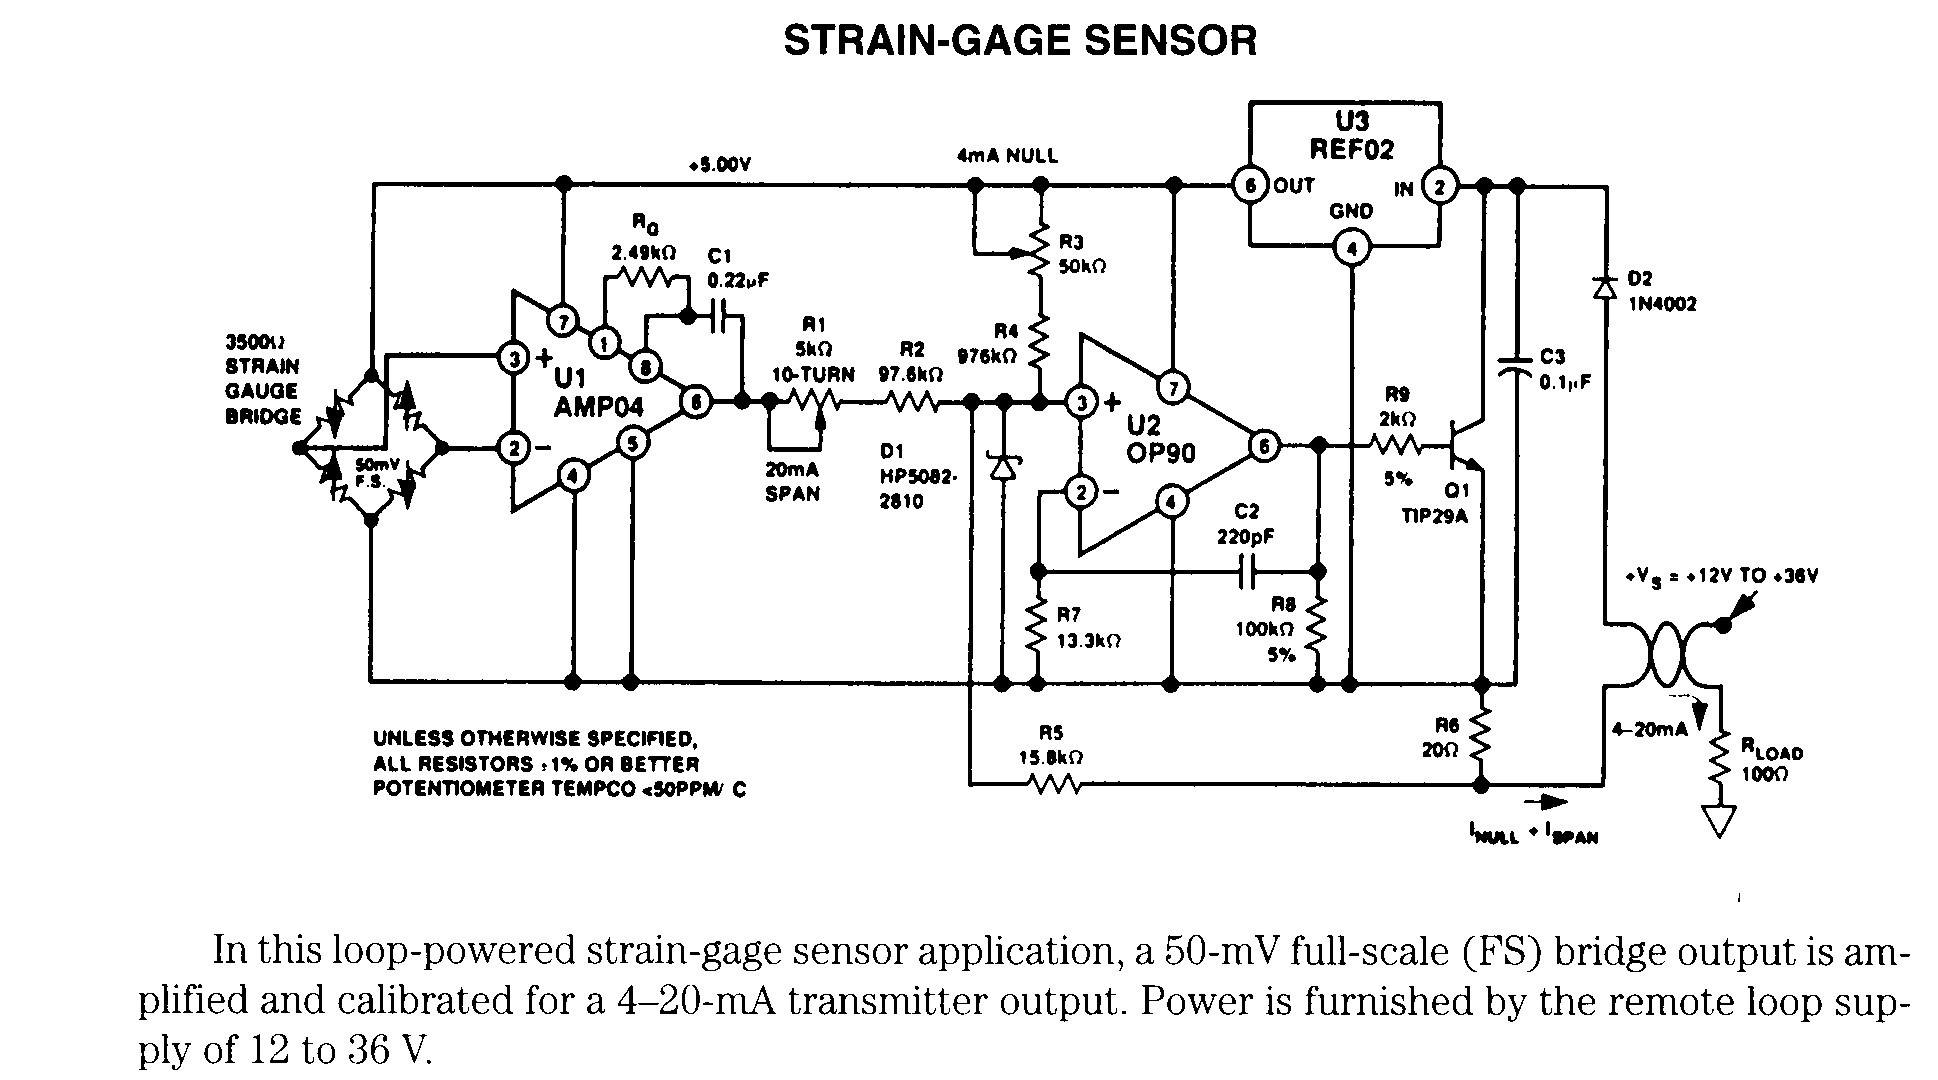 Strain Gauge Load Cell Circuit Diagram Lovely Strain Gauge Schematic Electronic Schematics Pinterest Electronic